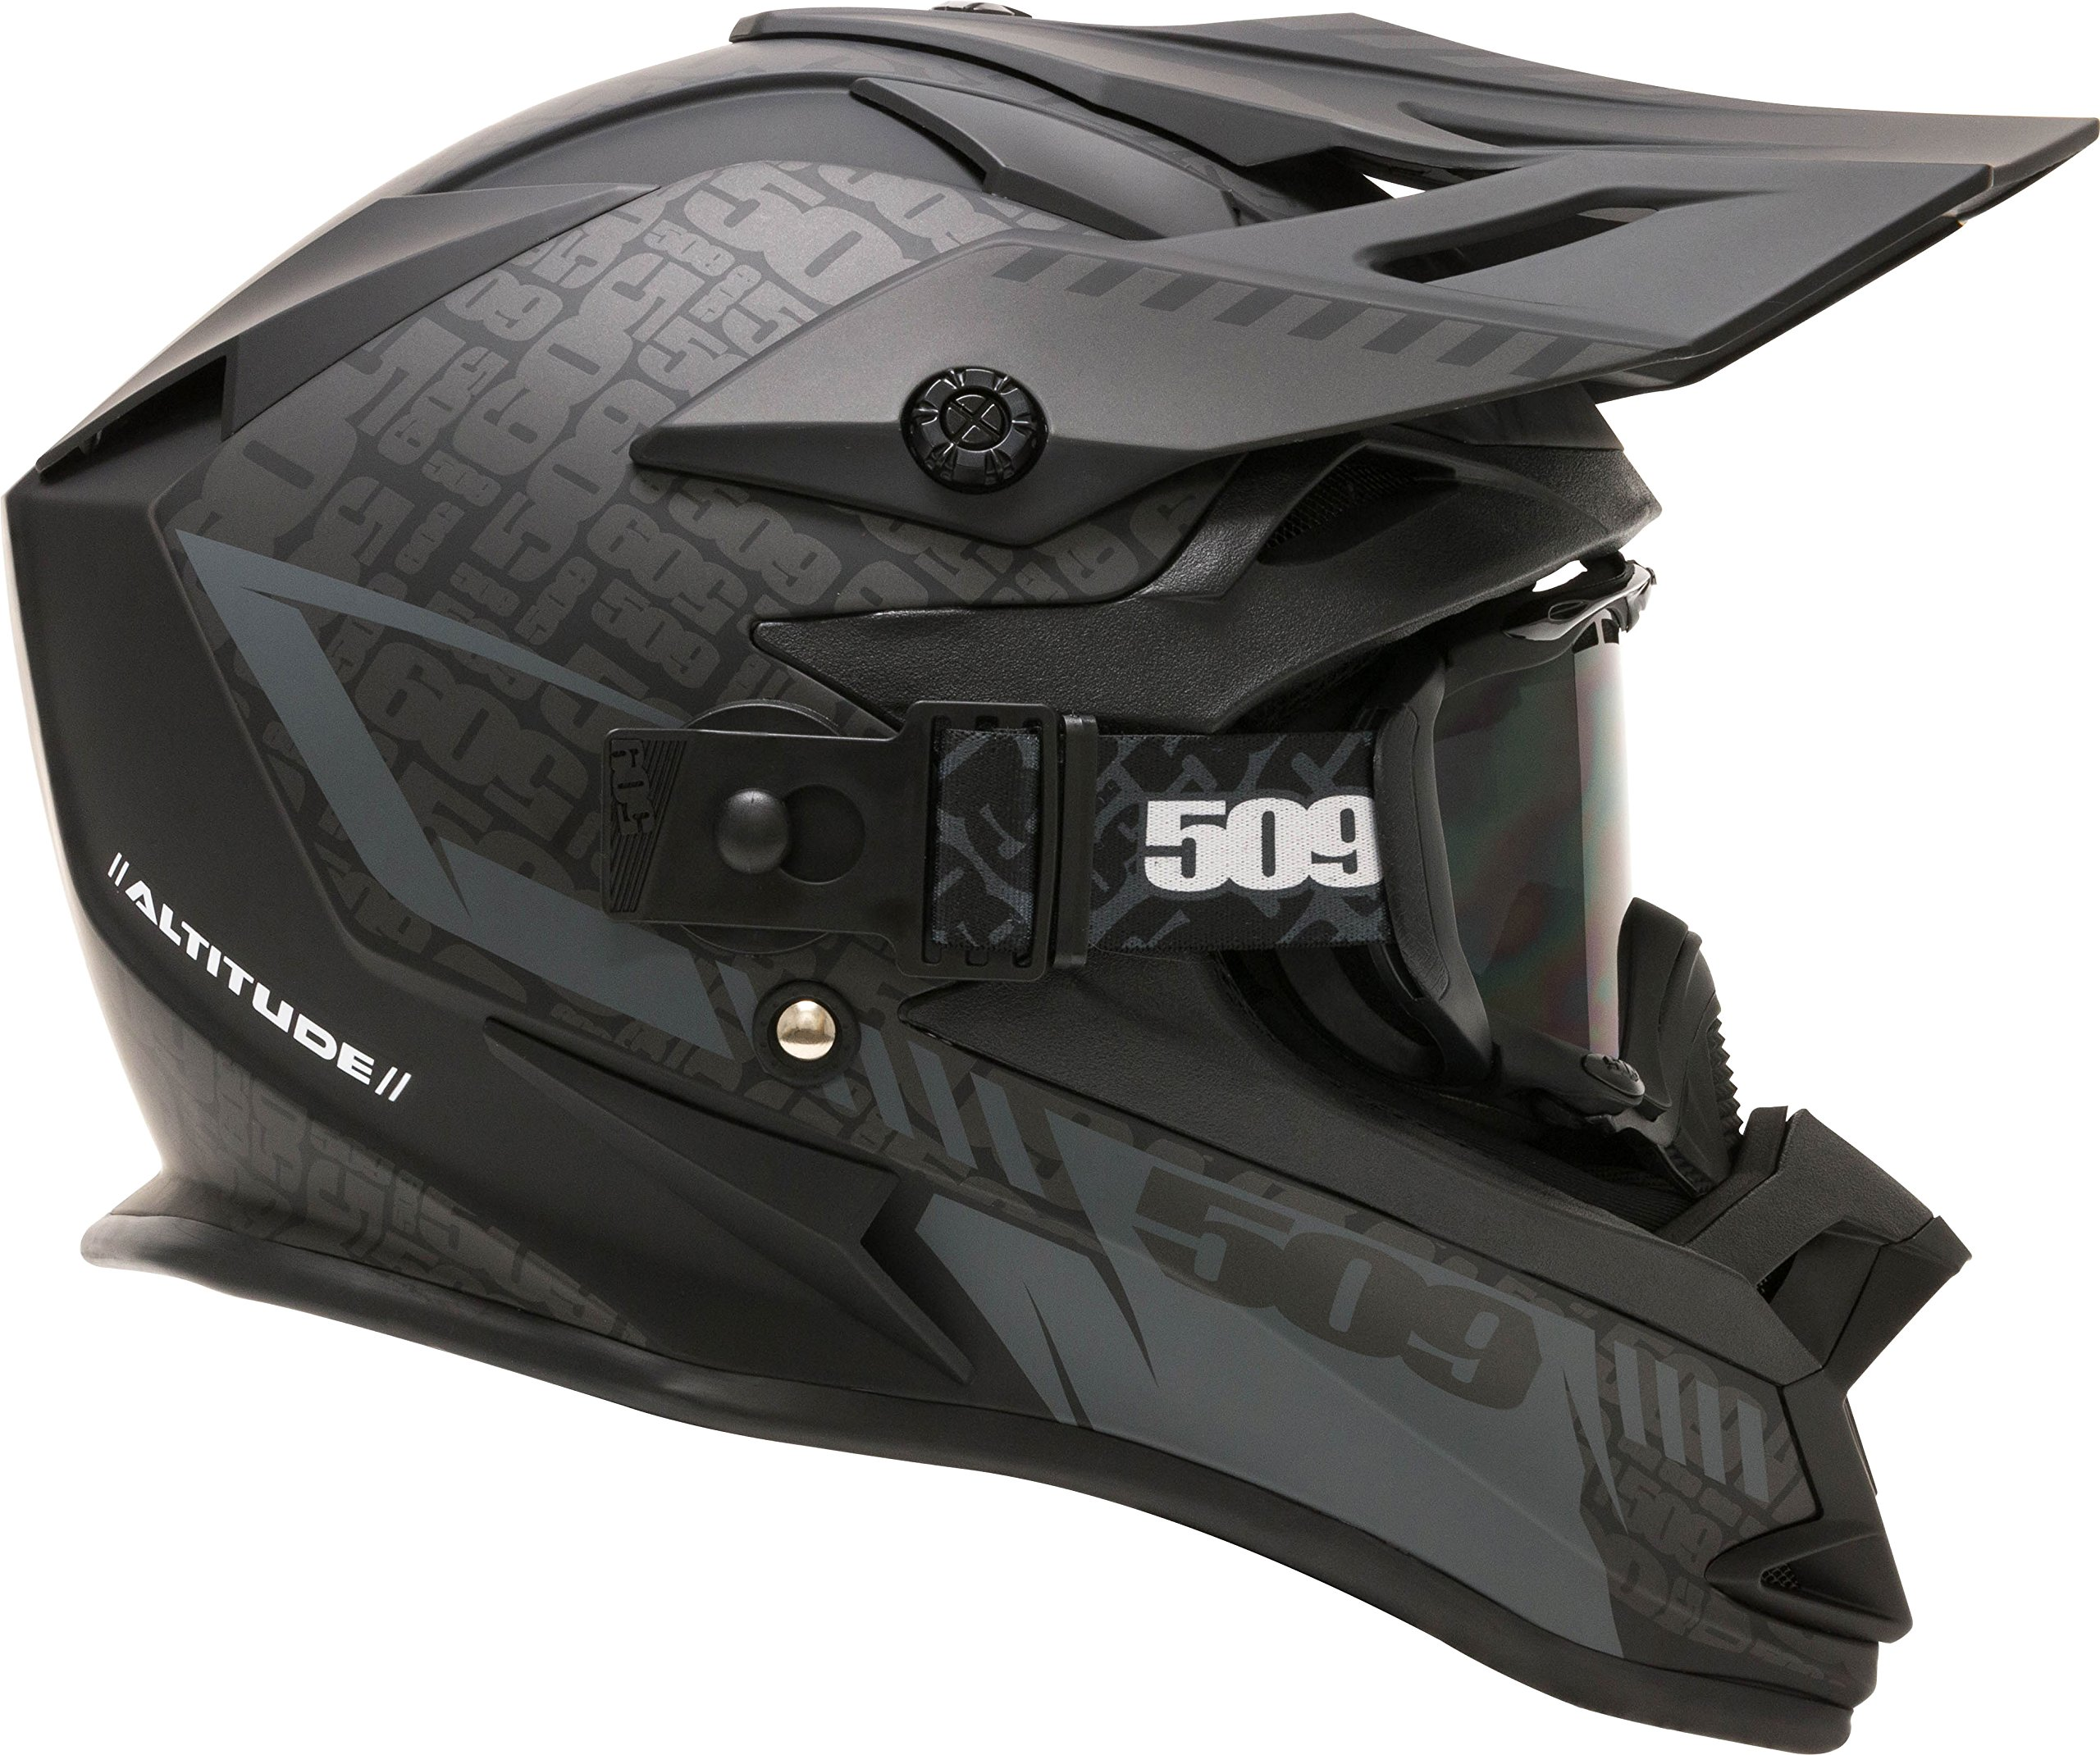 509 Black Quick Straps for Sinister X5 Goggles